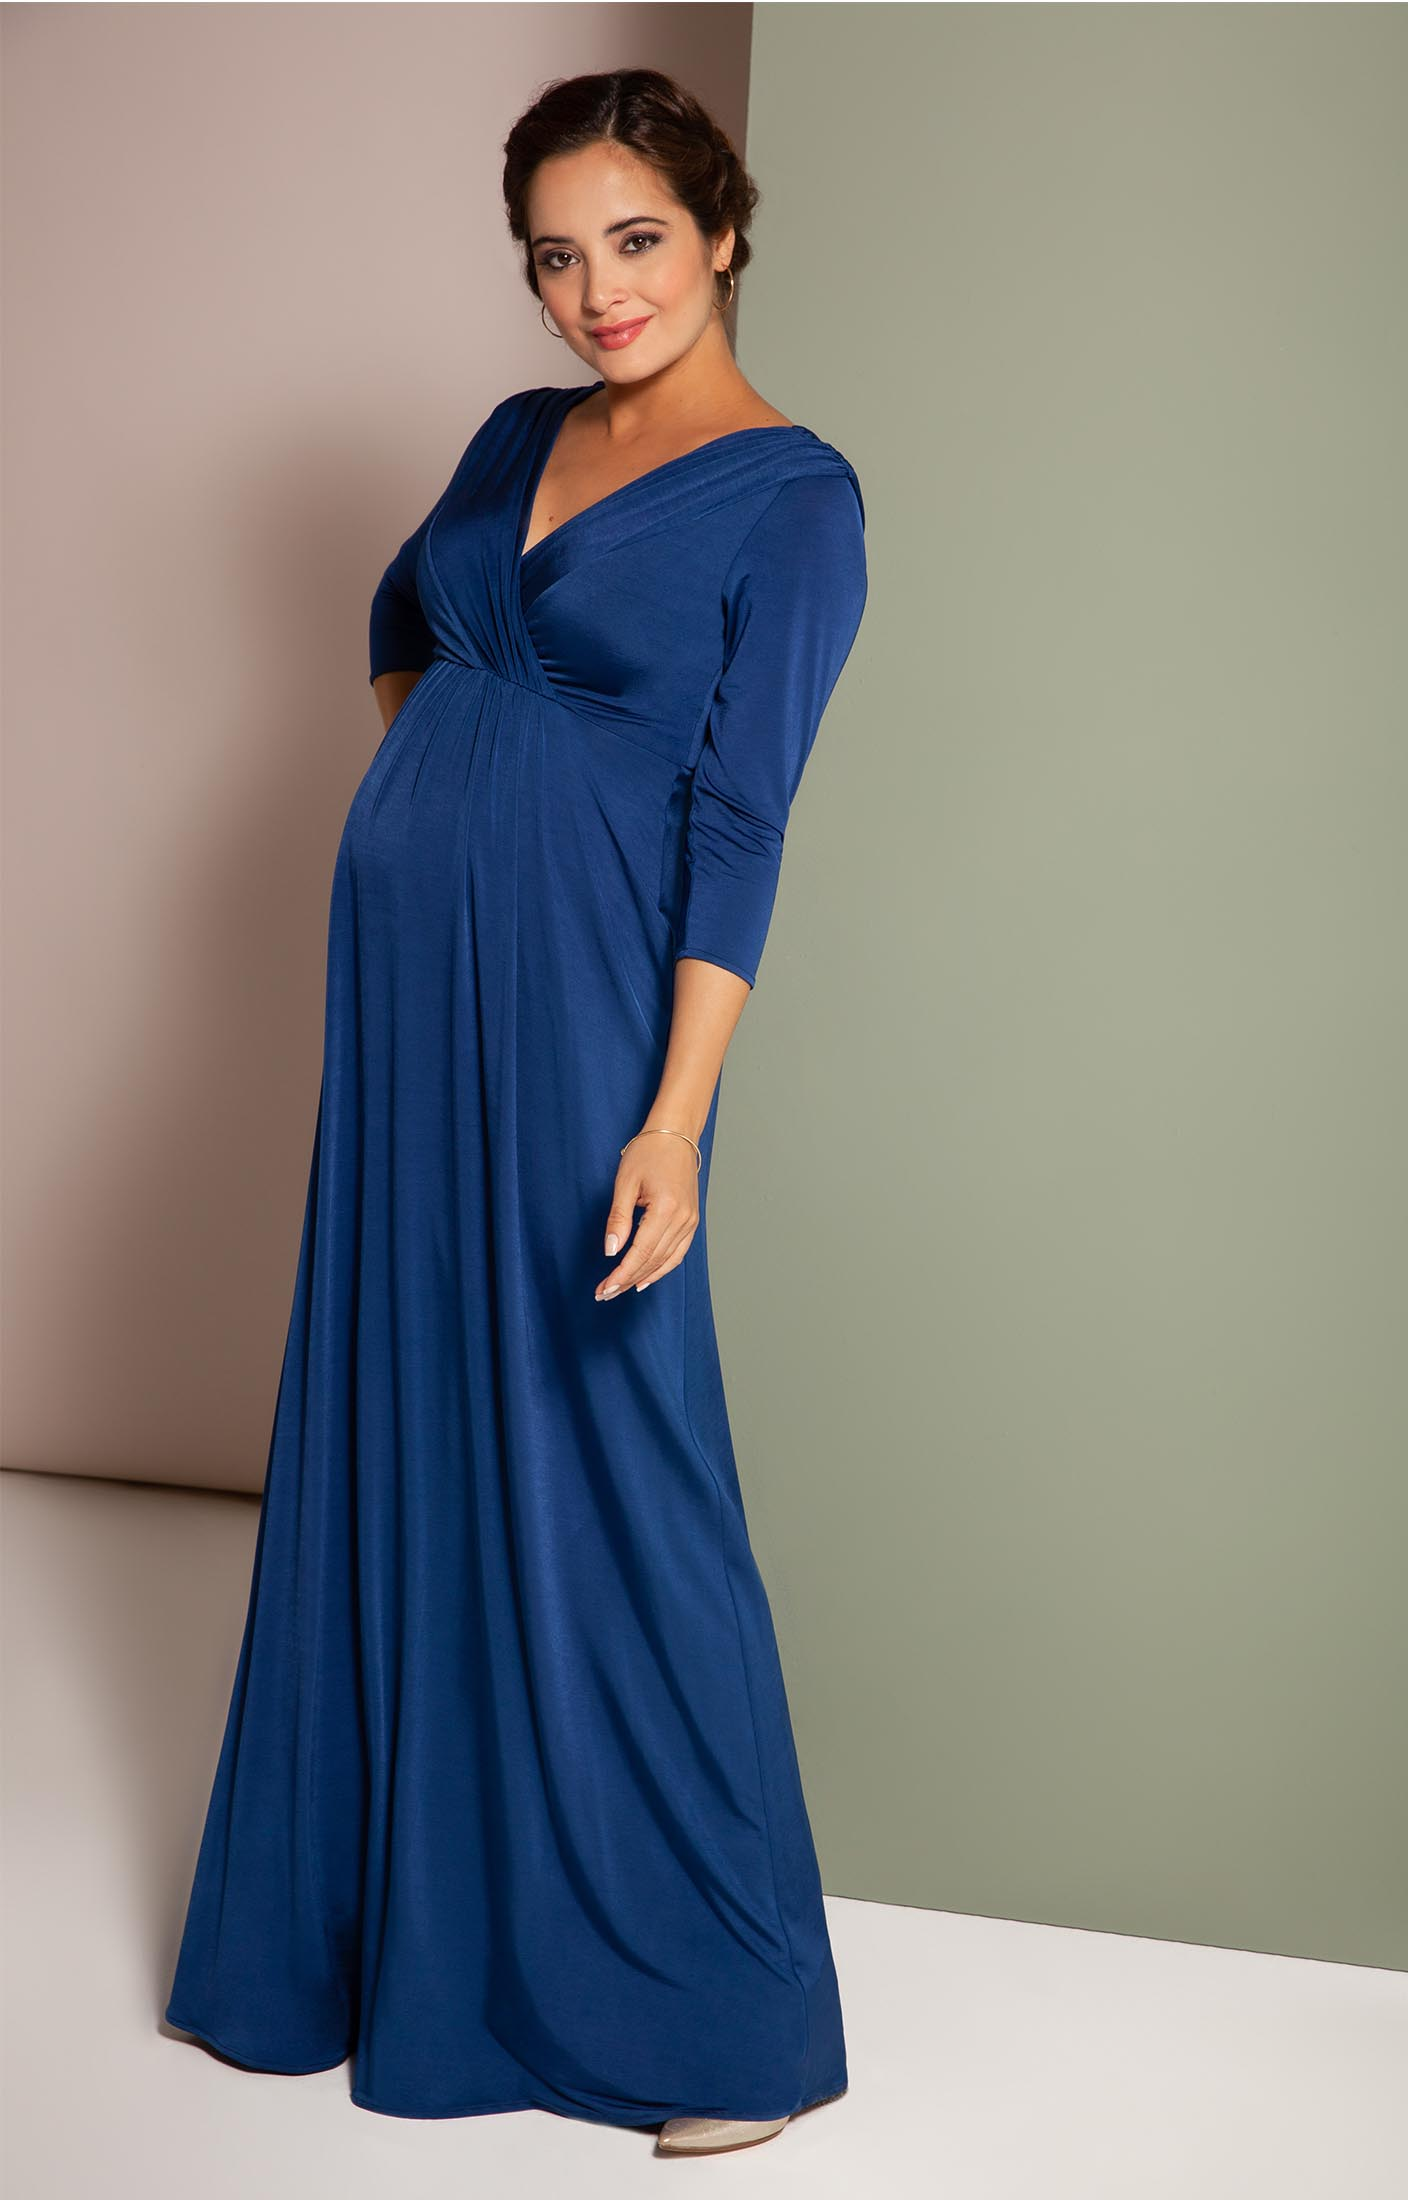 Willow Maternity Gown Imperial Blue , Maternity Wedding Dresses, Evening  Wear and Party Clothes by Tiffany Rose